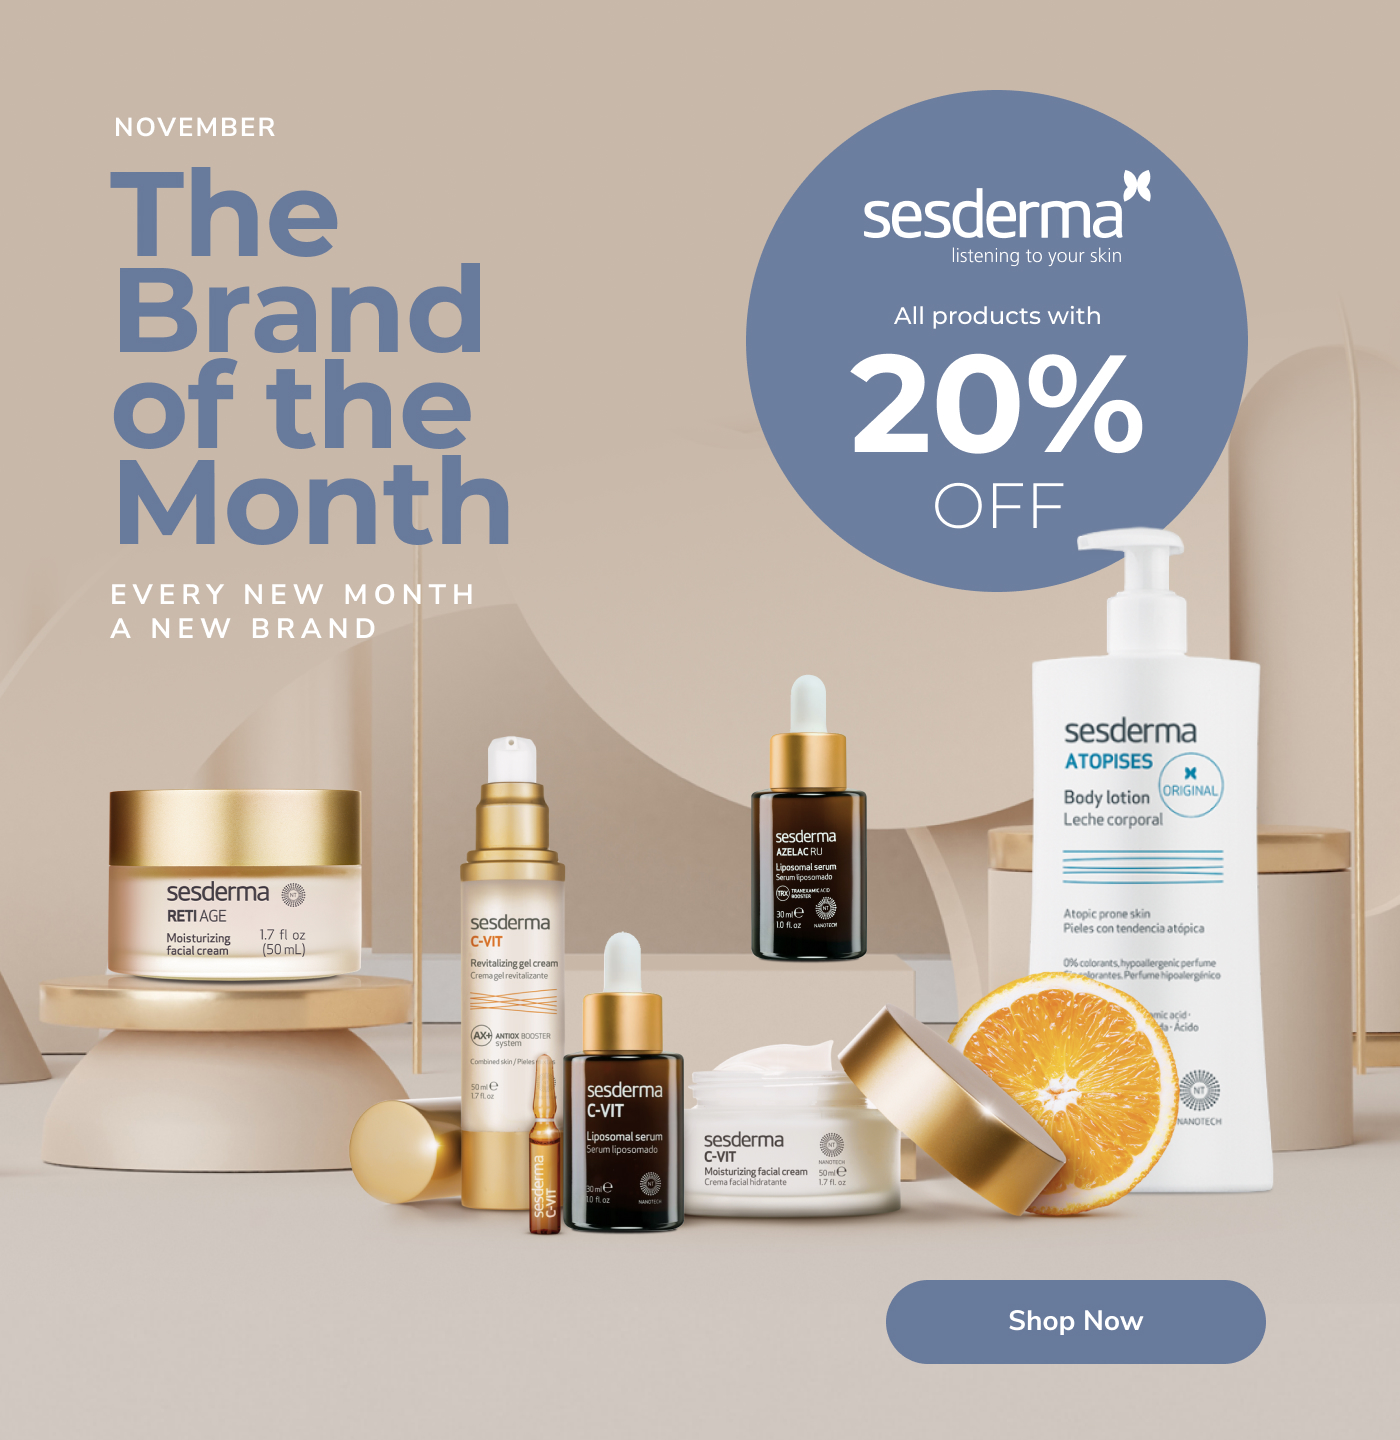 Sesderma brand of the month 20% off